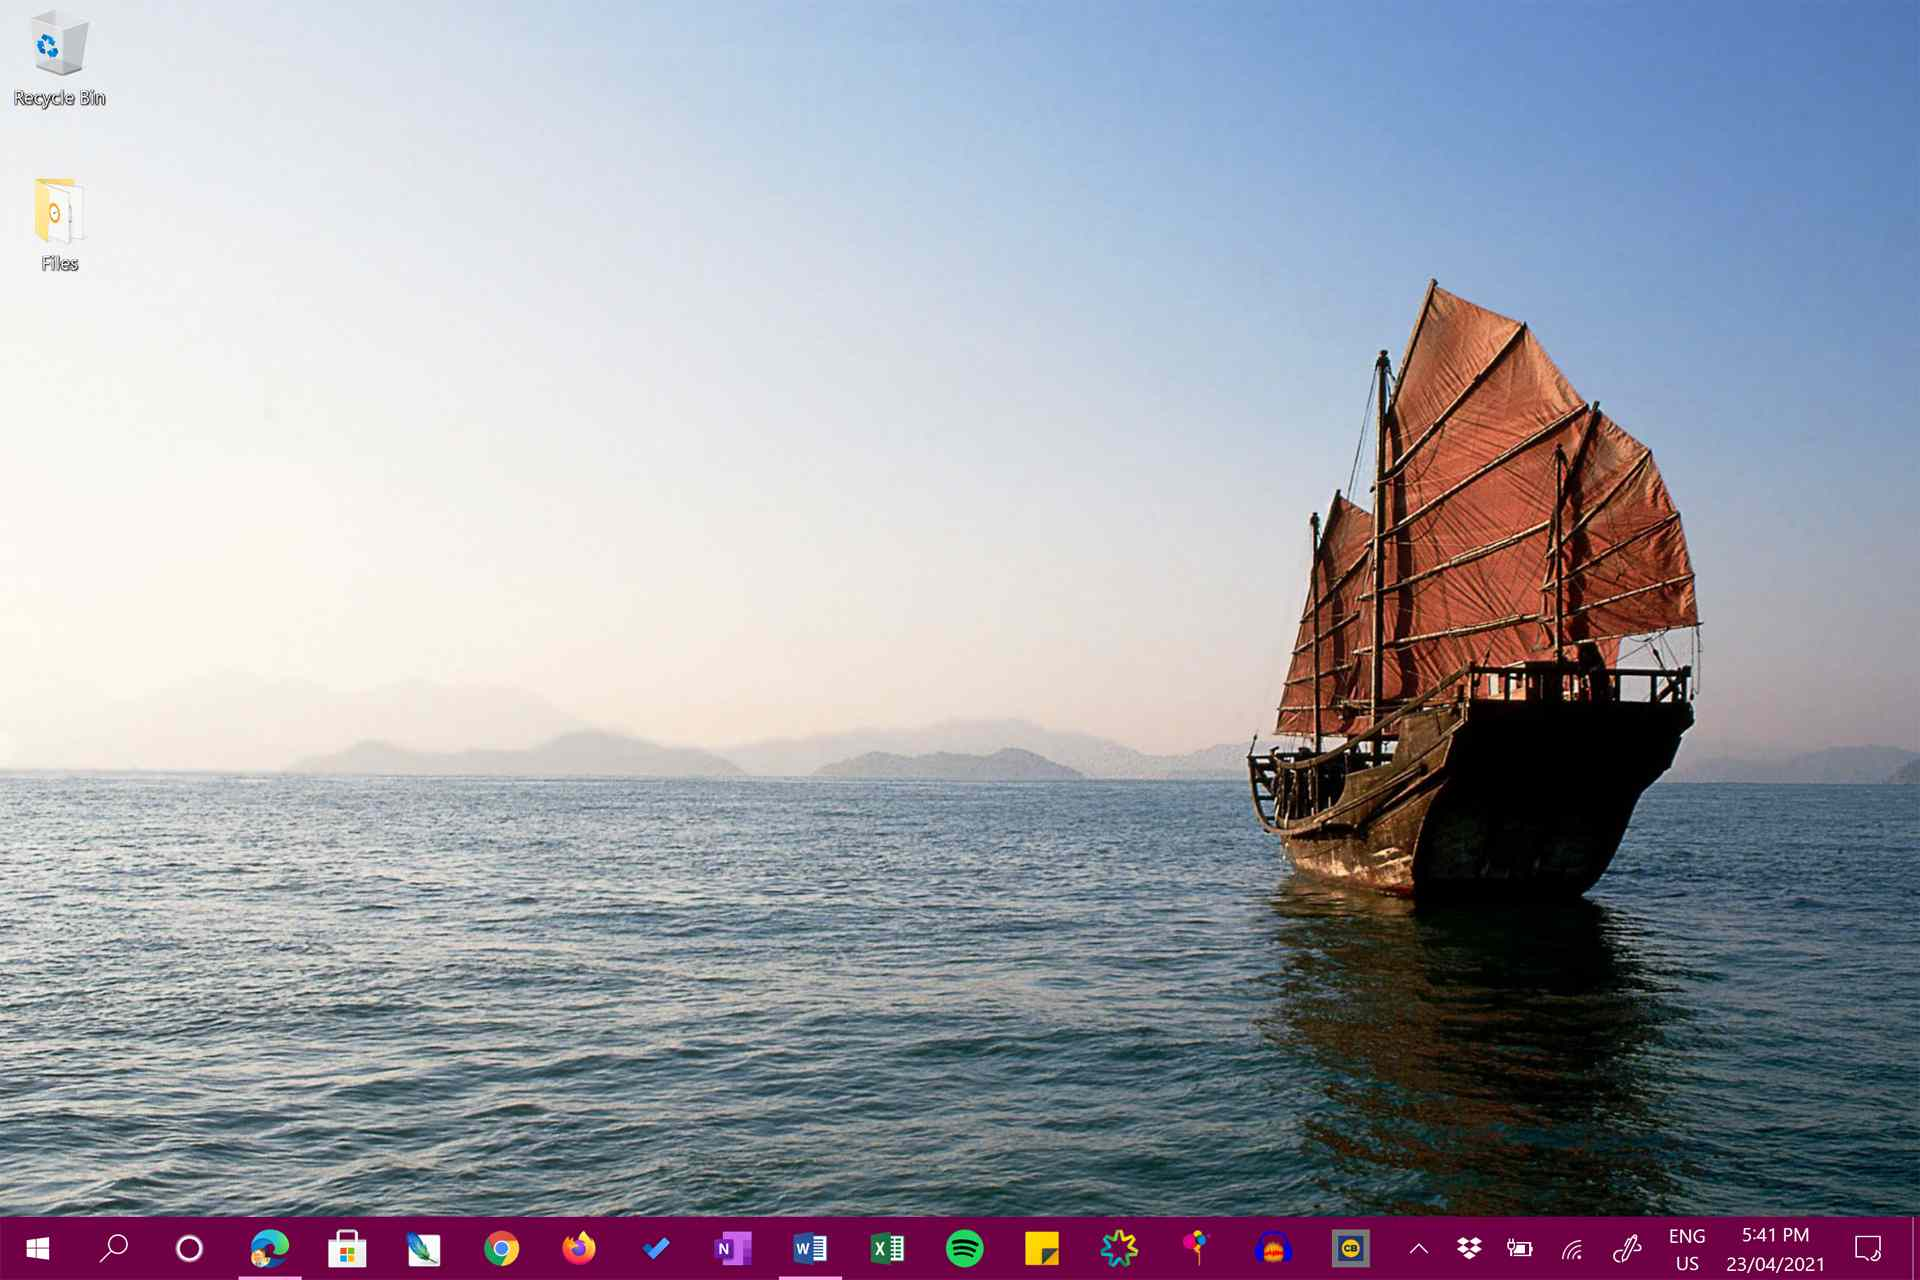 Windows 10 desktop with a ship background image.